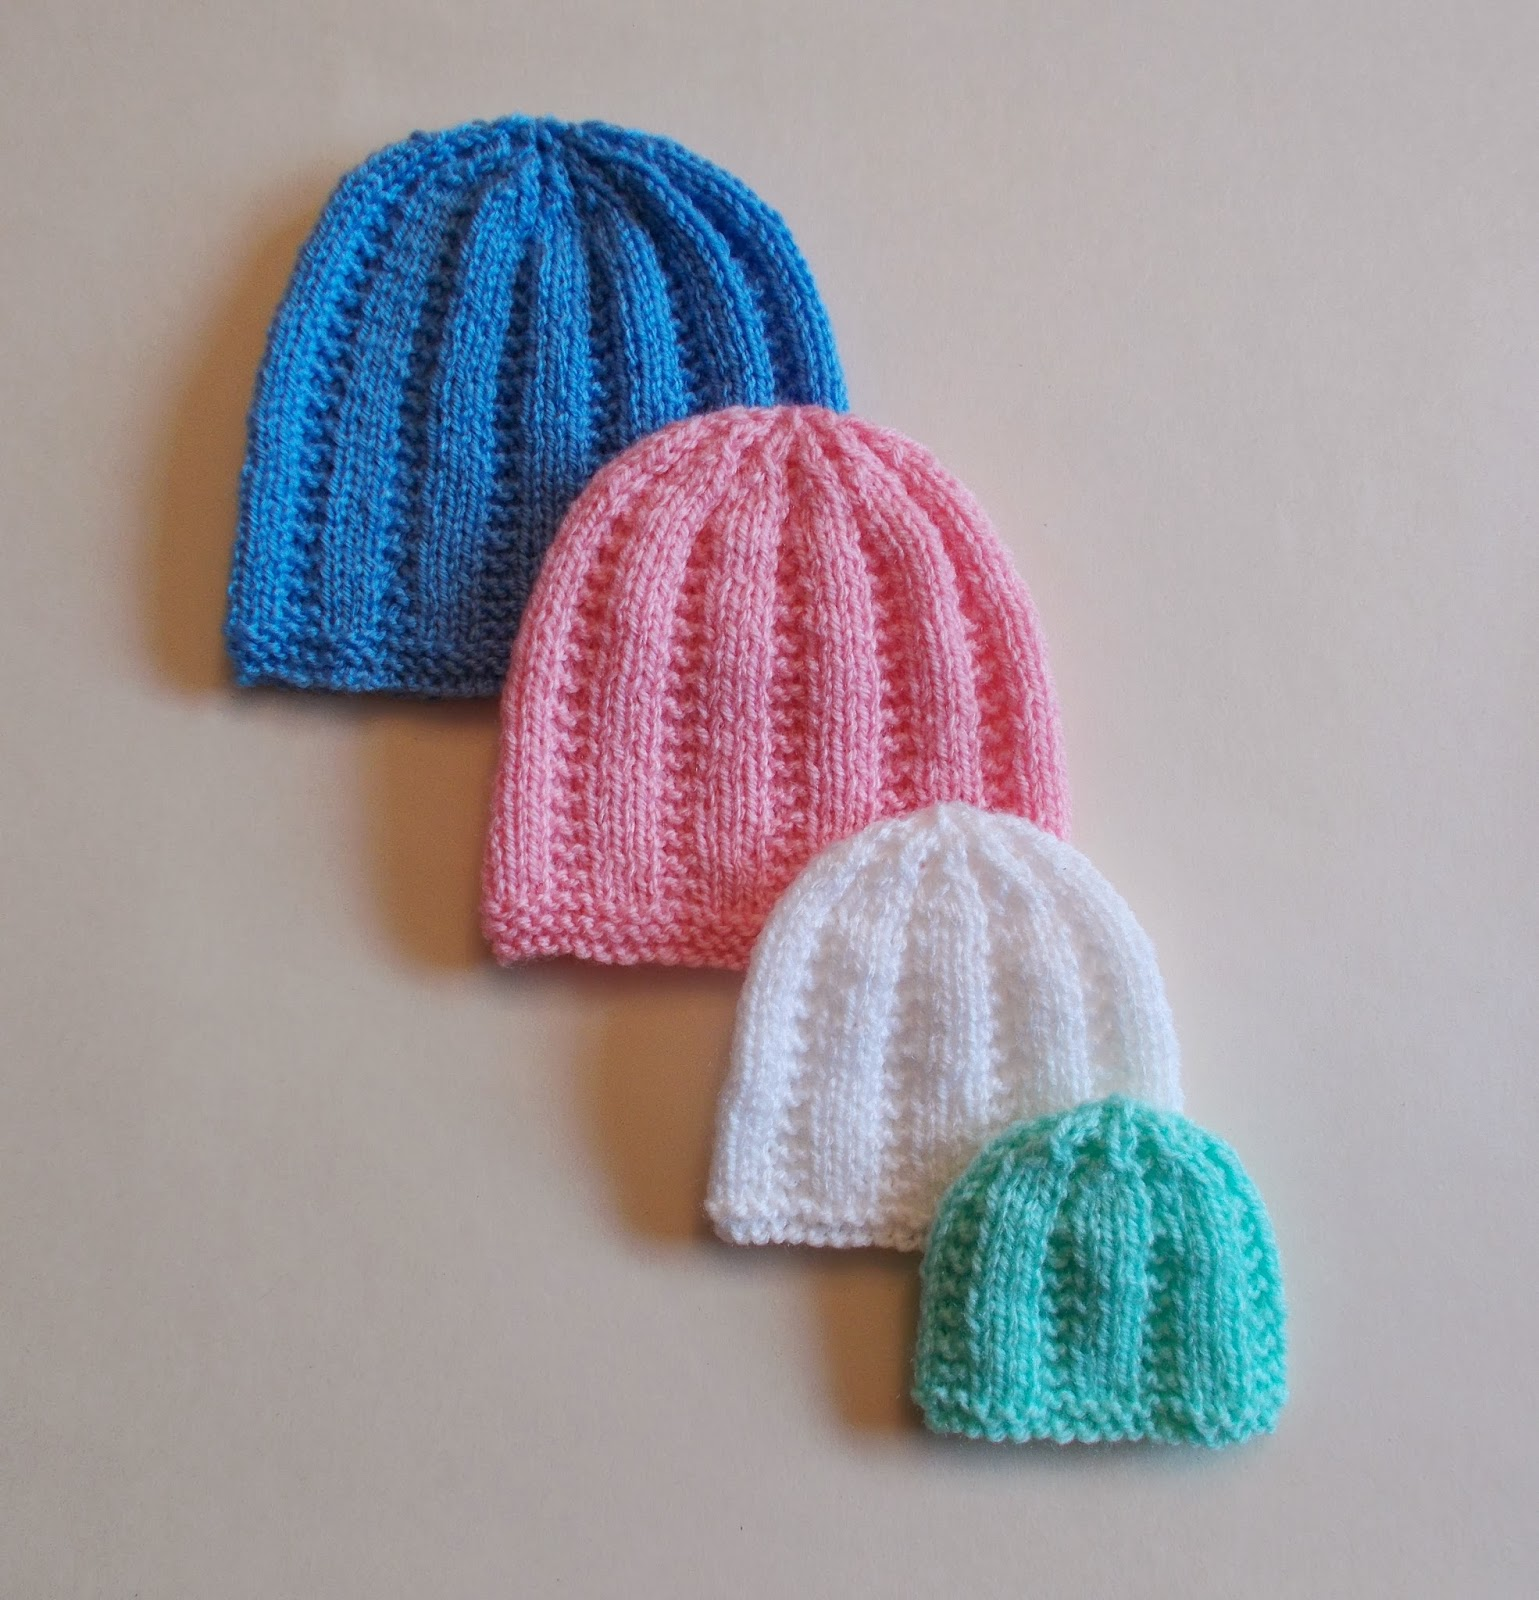 Easy Preemie Hat Knitting Pattern : mariannas lazy daisy days: Perfect Premature and Newborn ...